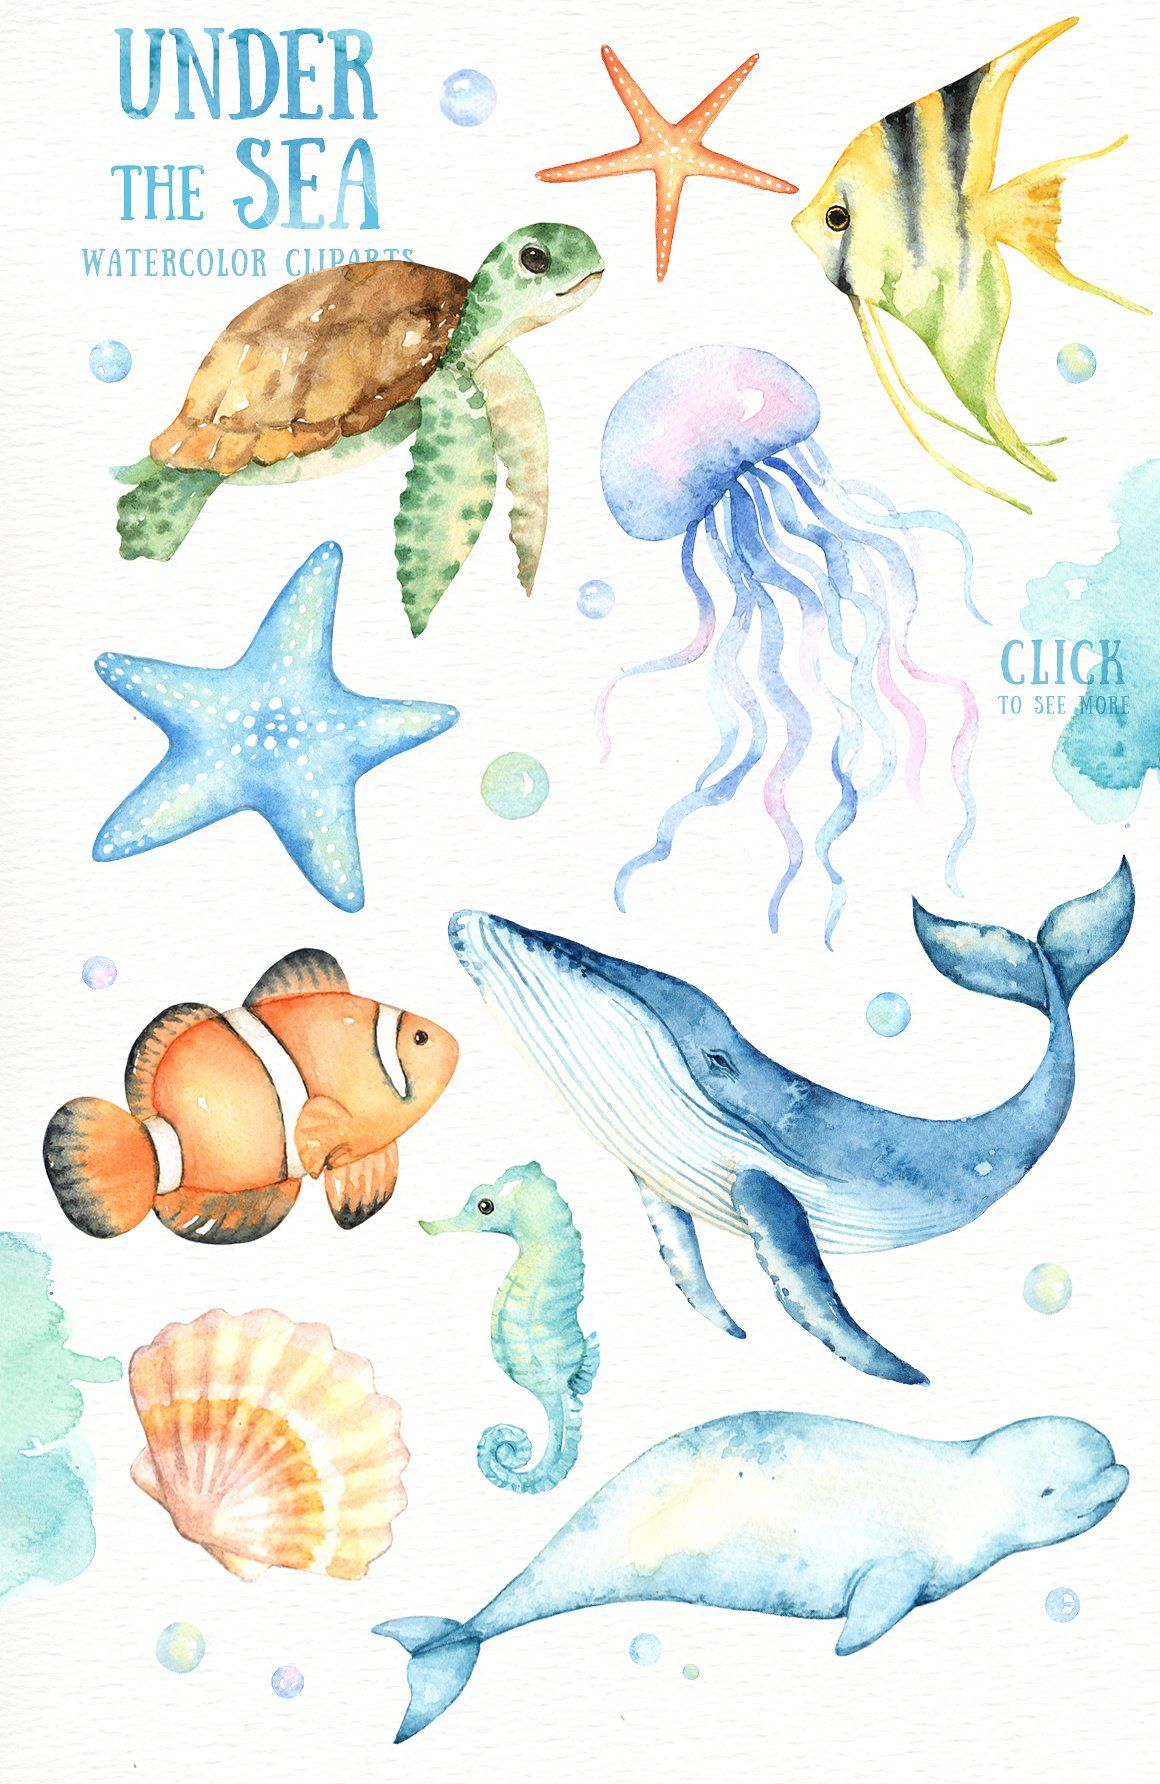 Under the Sea Watercolor Cliparts #wedding#Perfect#greeting.